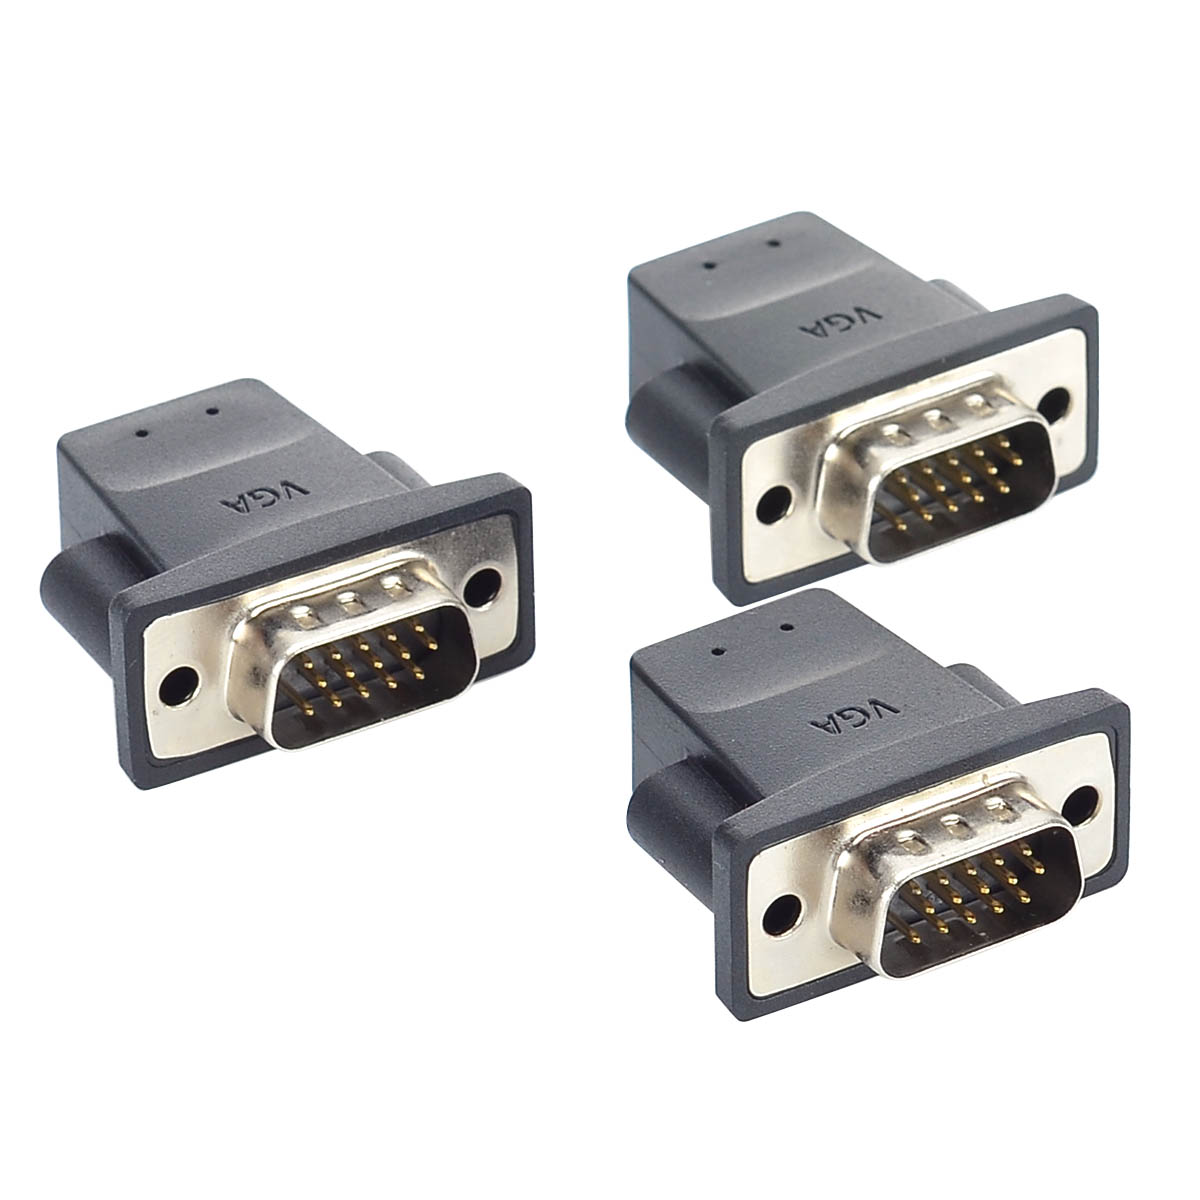 fit Headless-1920x1080@60hz Dvi Dummy Plug Headless Ghost Display Emulator -3pack